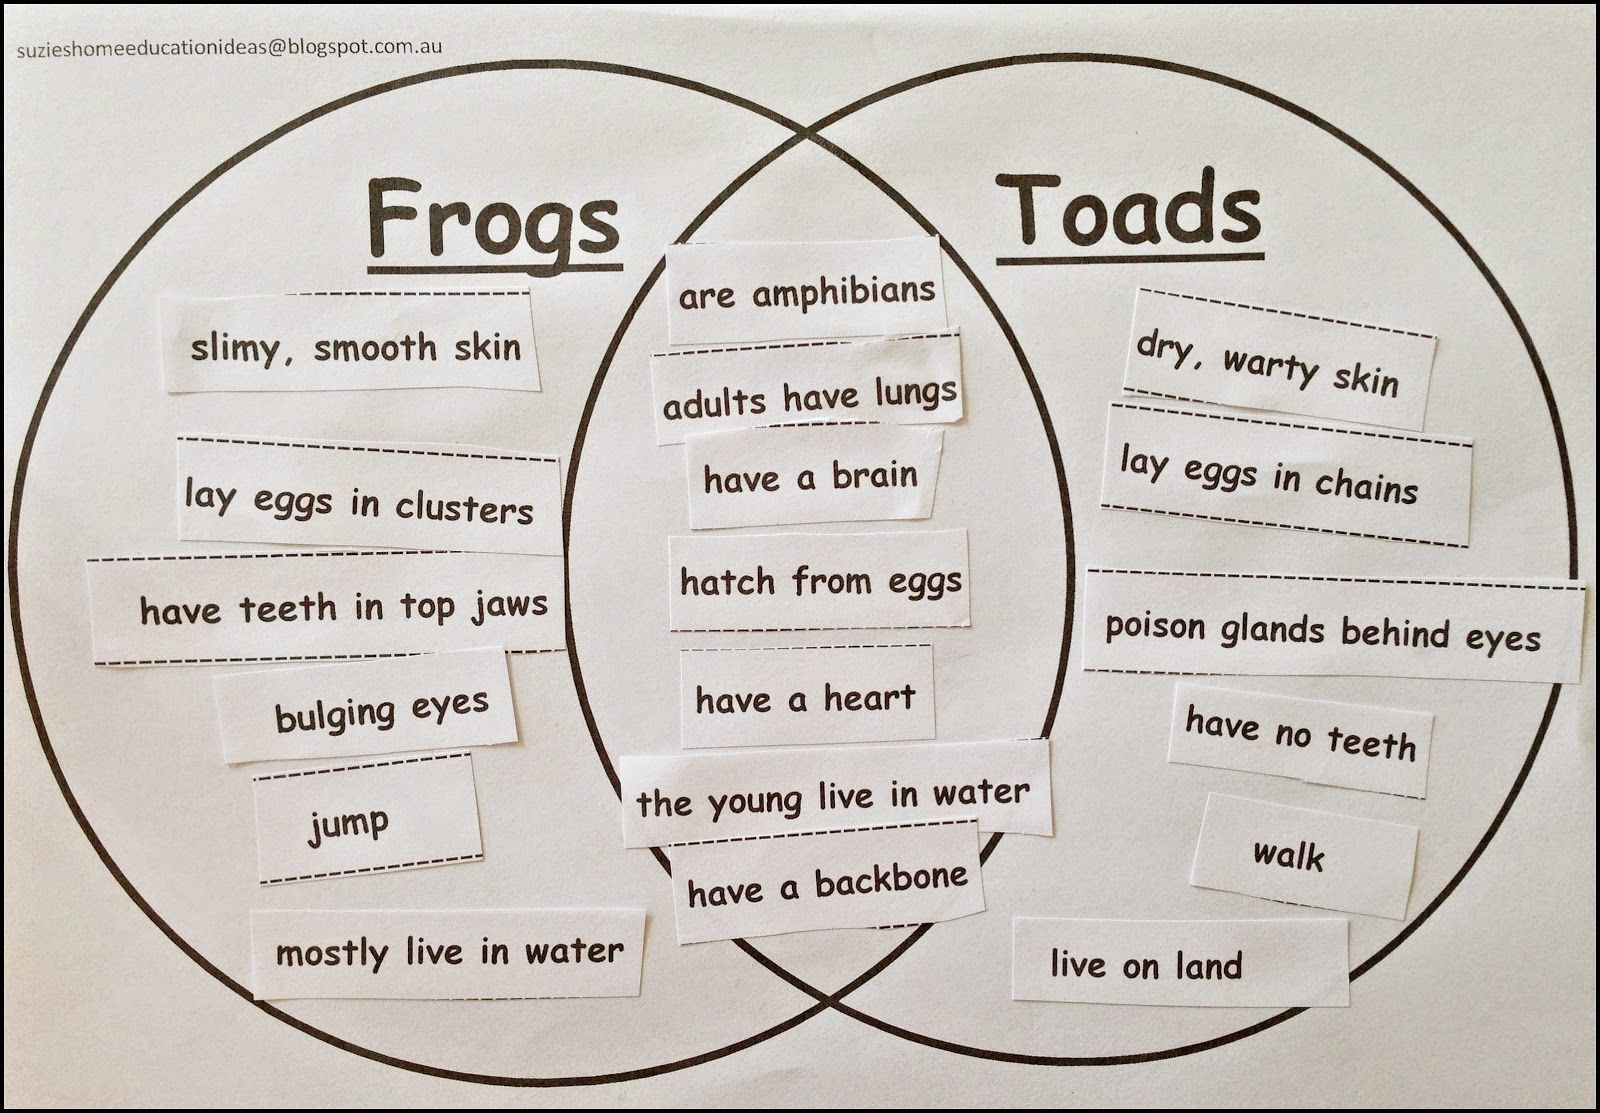 amphibians vs reptiles venn diagram jeep cherokee wiring 1999 life cycle of a frog book suggestions frogs and activities